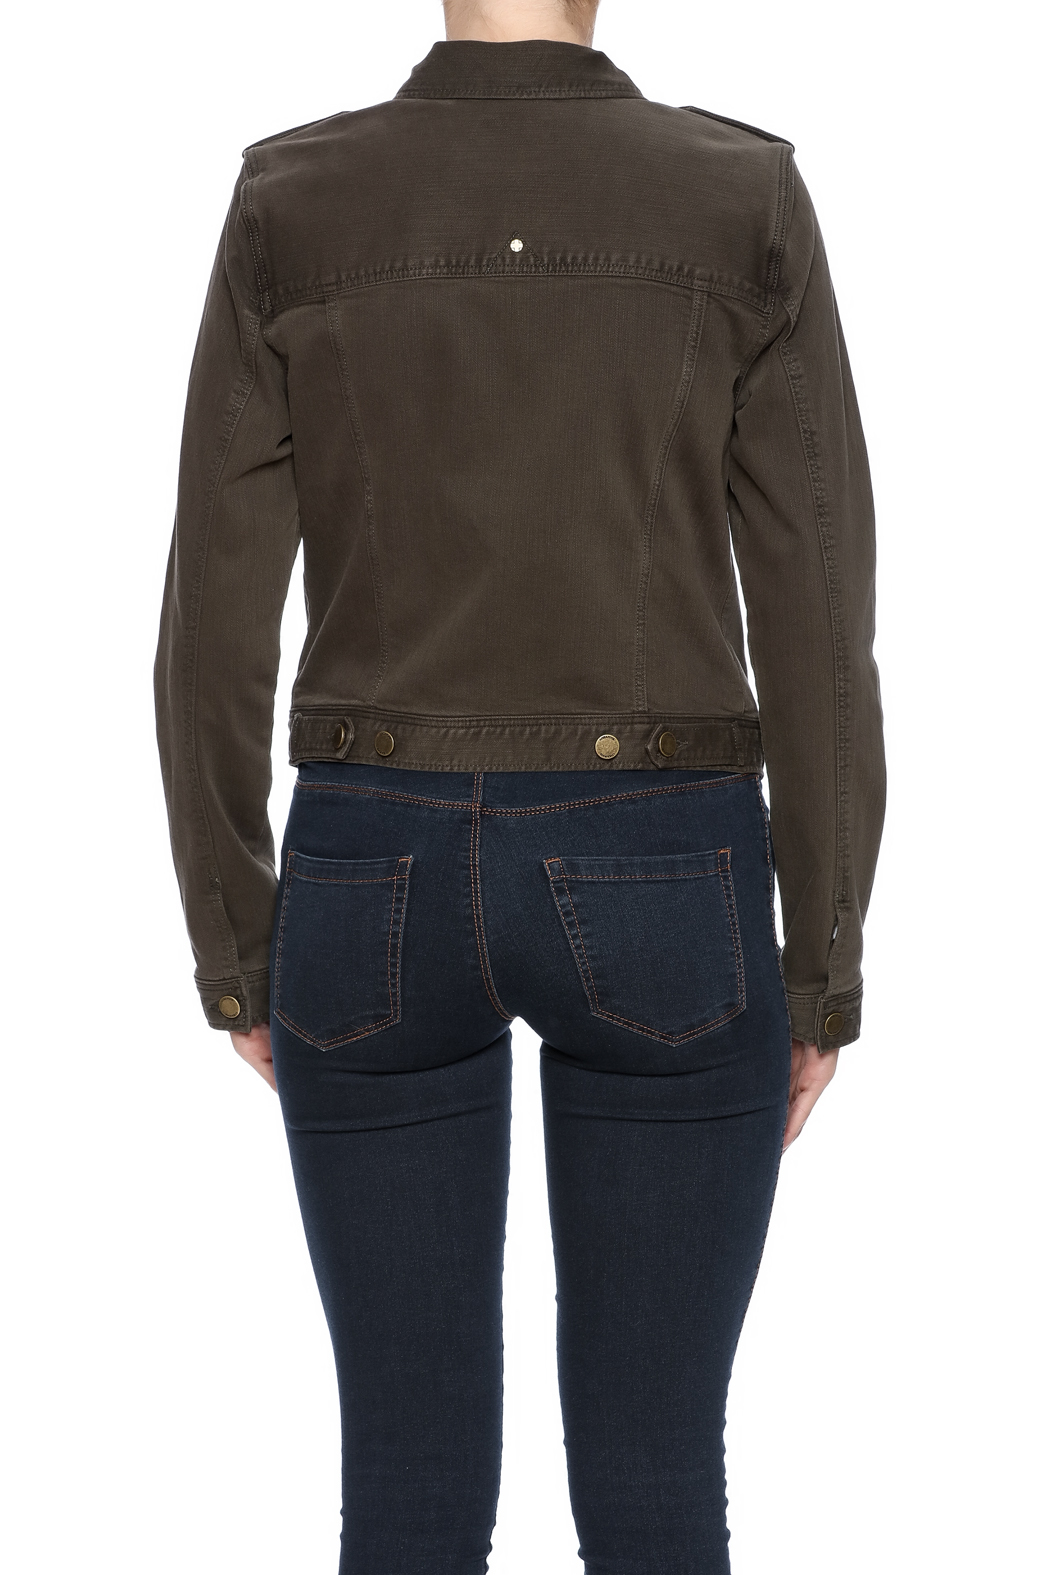 Liverpool Jean Company Cargo Jacket - Back Cropped Image